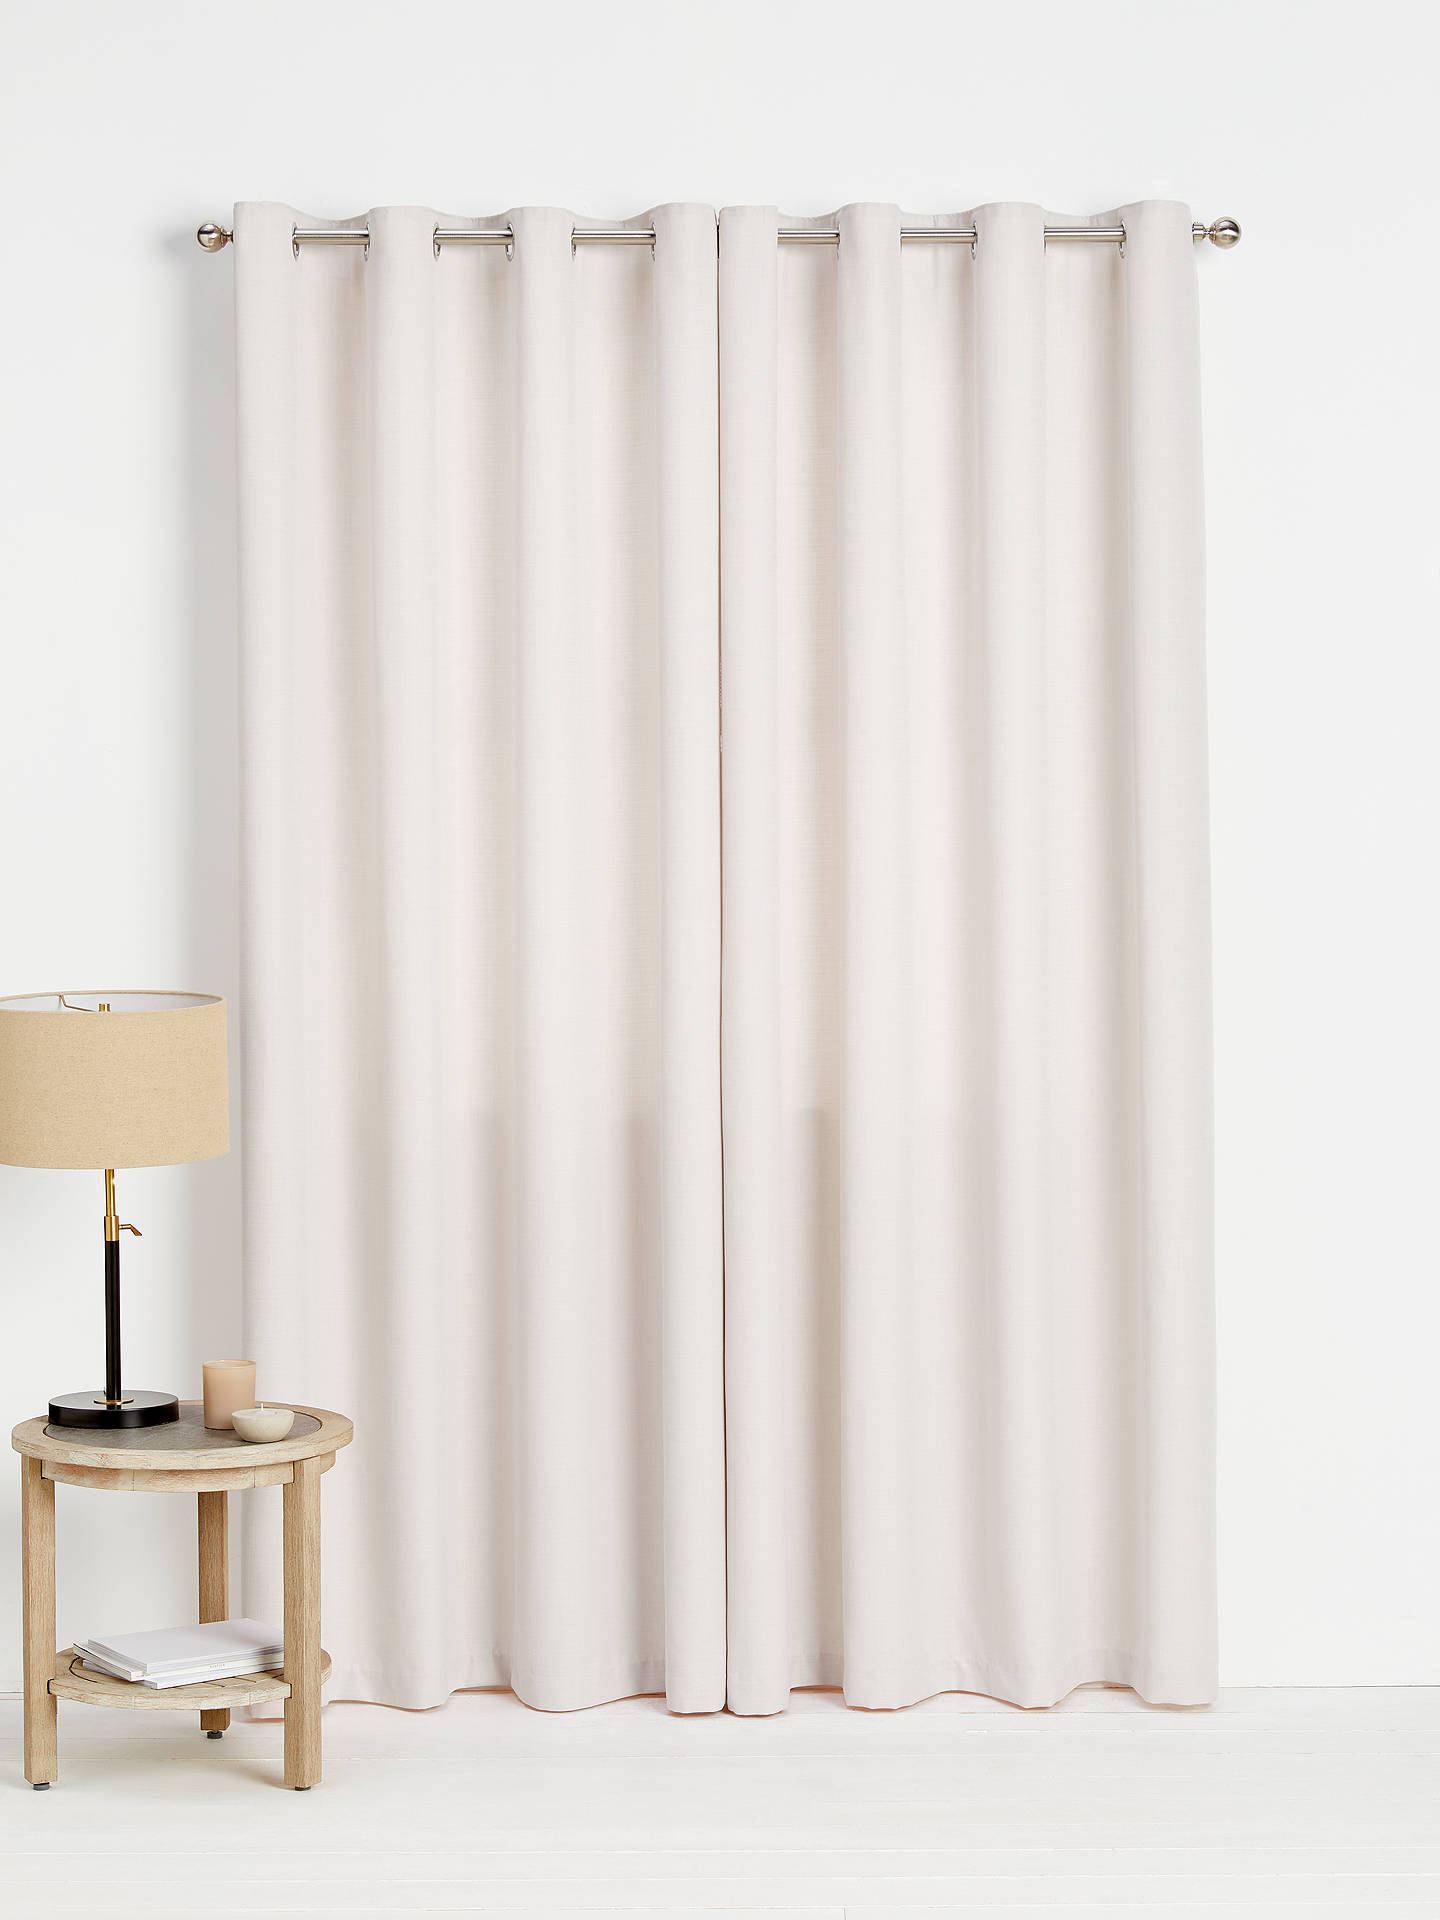 Buy John Lewis & Partners Barathea Pair Lined Eyelet Curtains, Wisteria, W167 x Drop 274cm Online at johnlewis.com